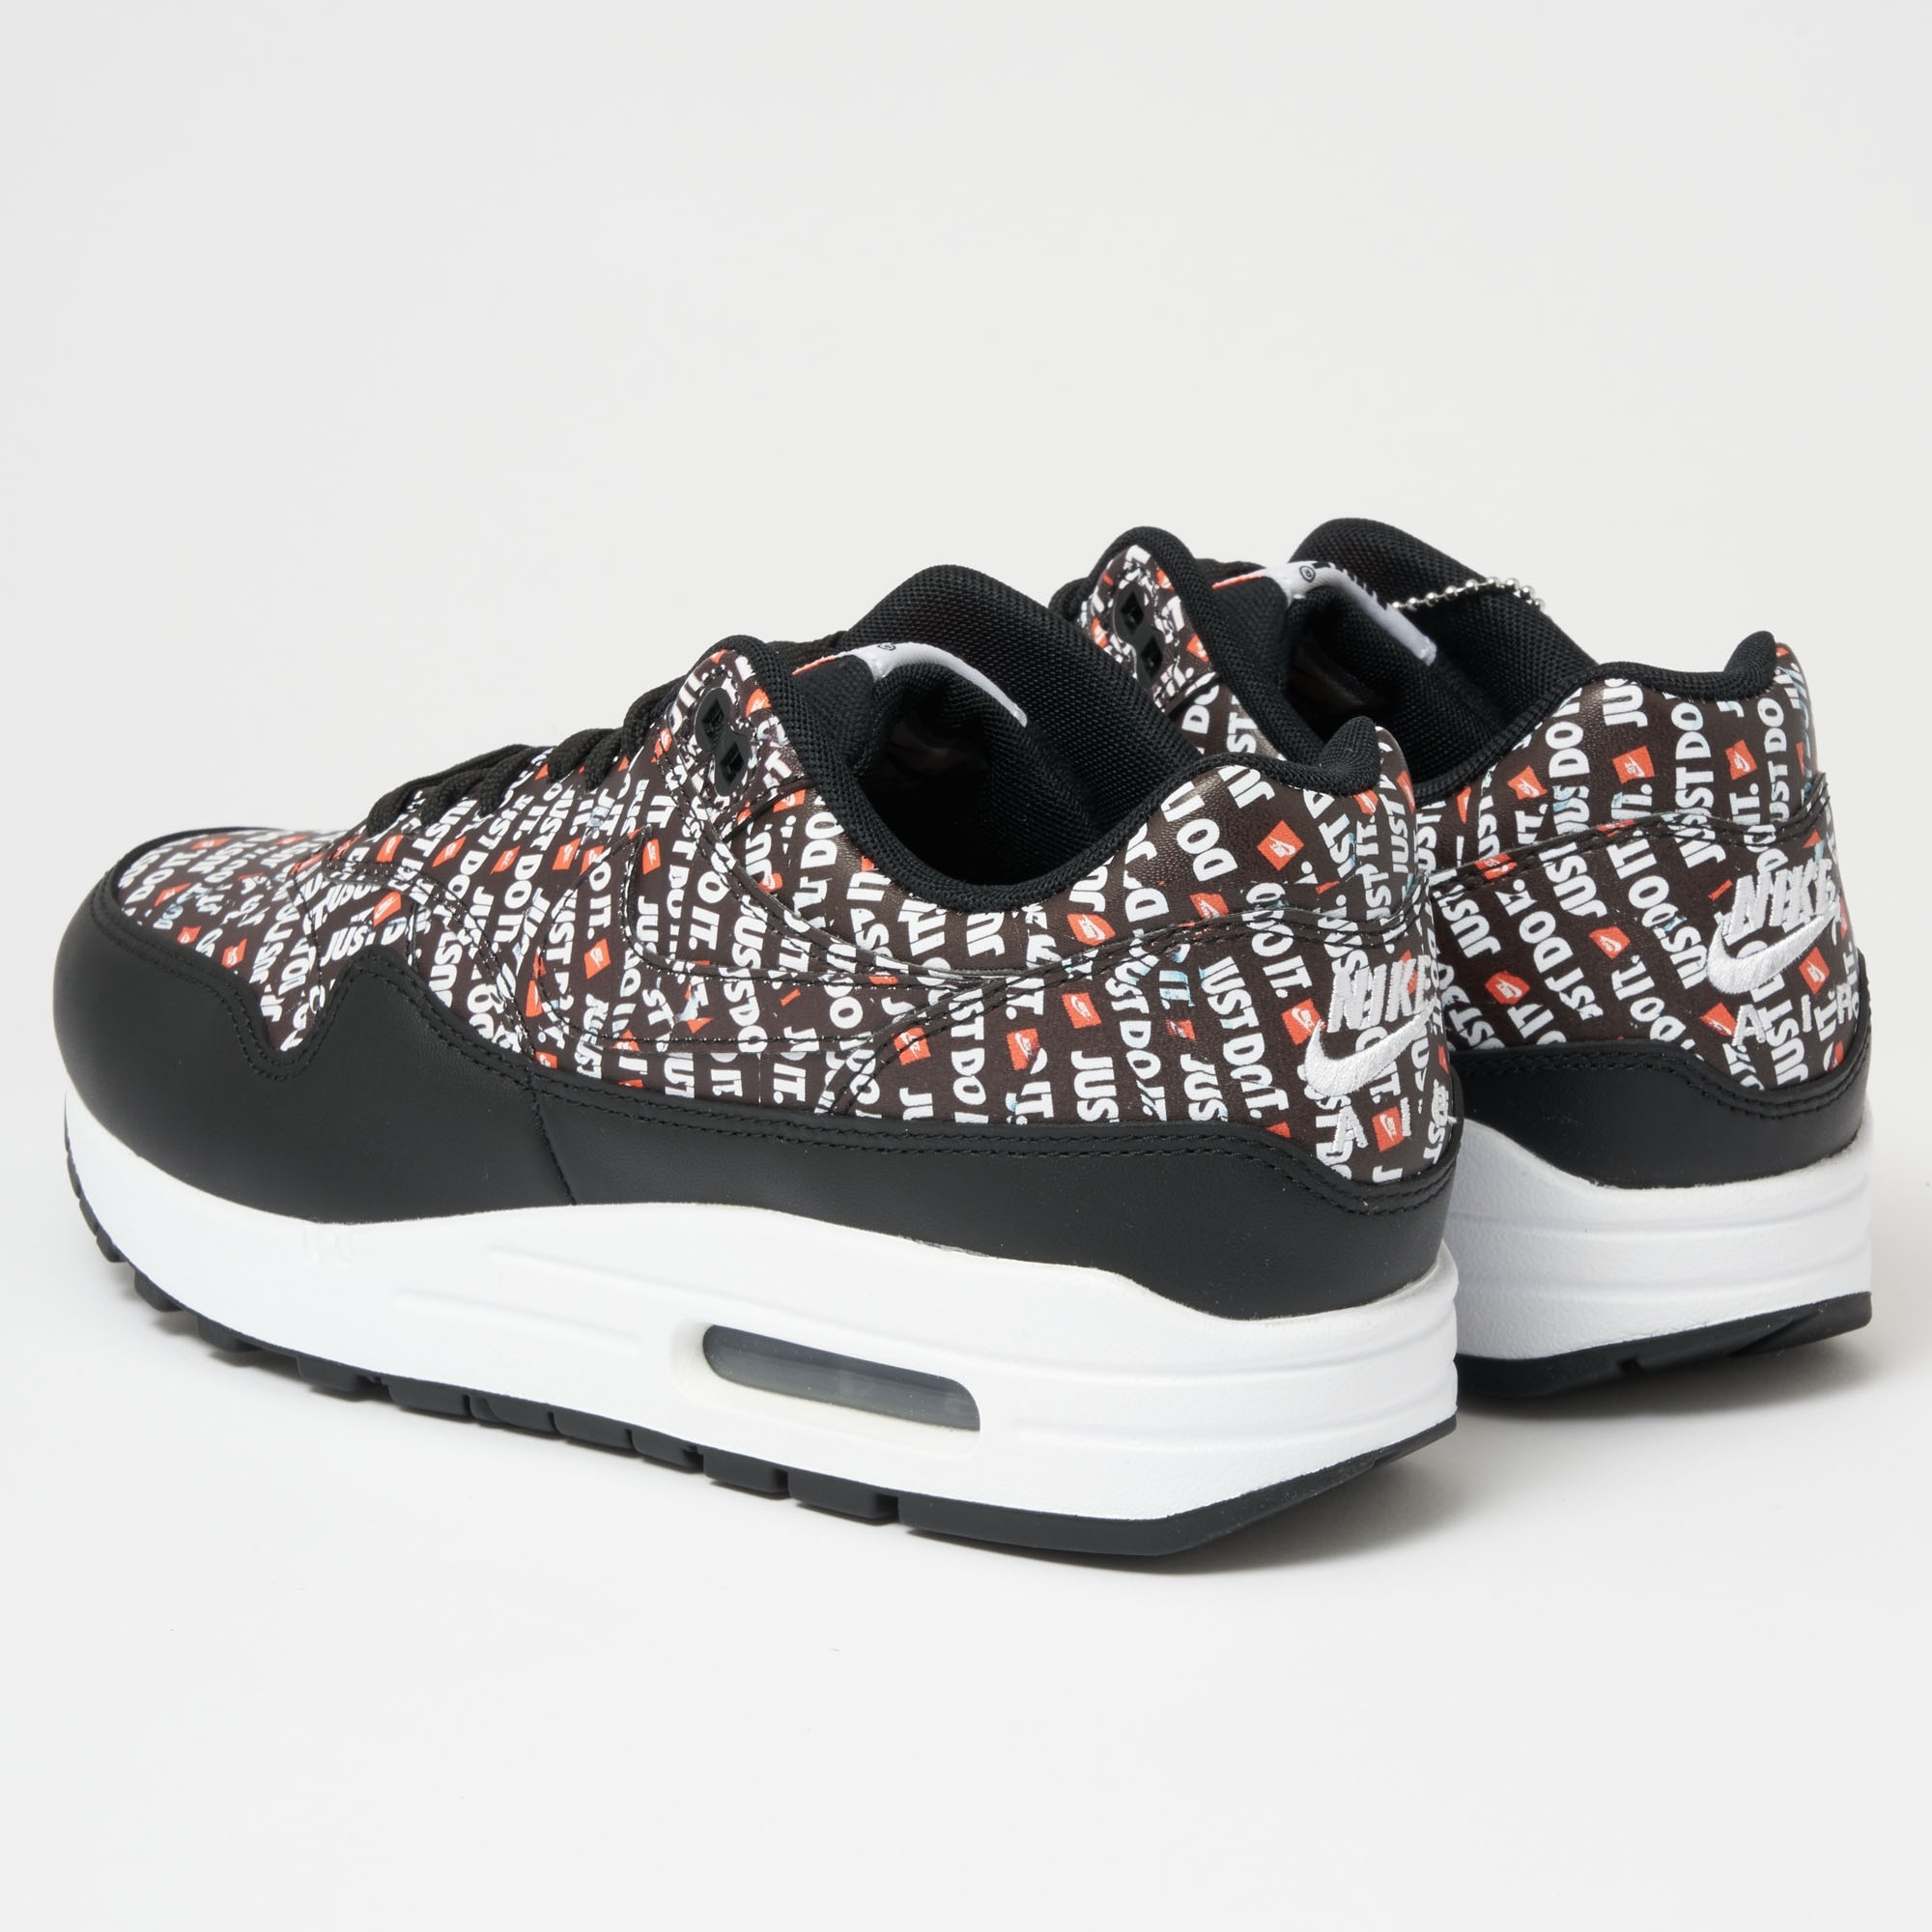 outlet store 8c83c ea7da Air Max 1 PRM - Black, White   Total Orange